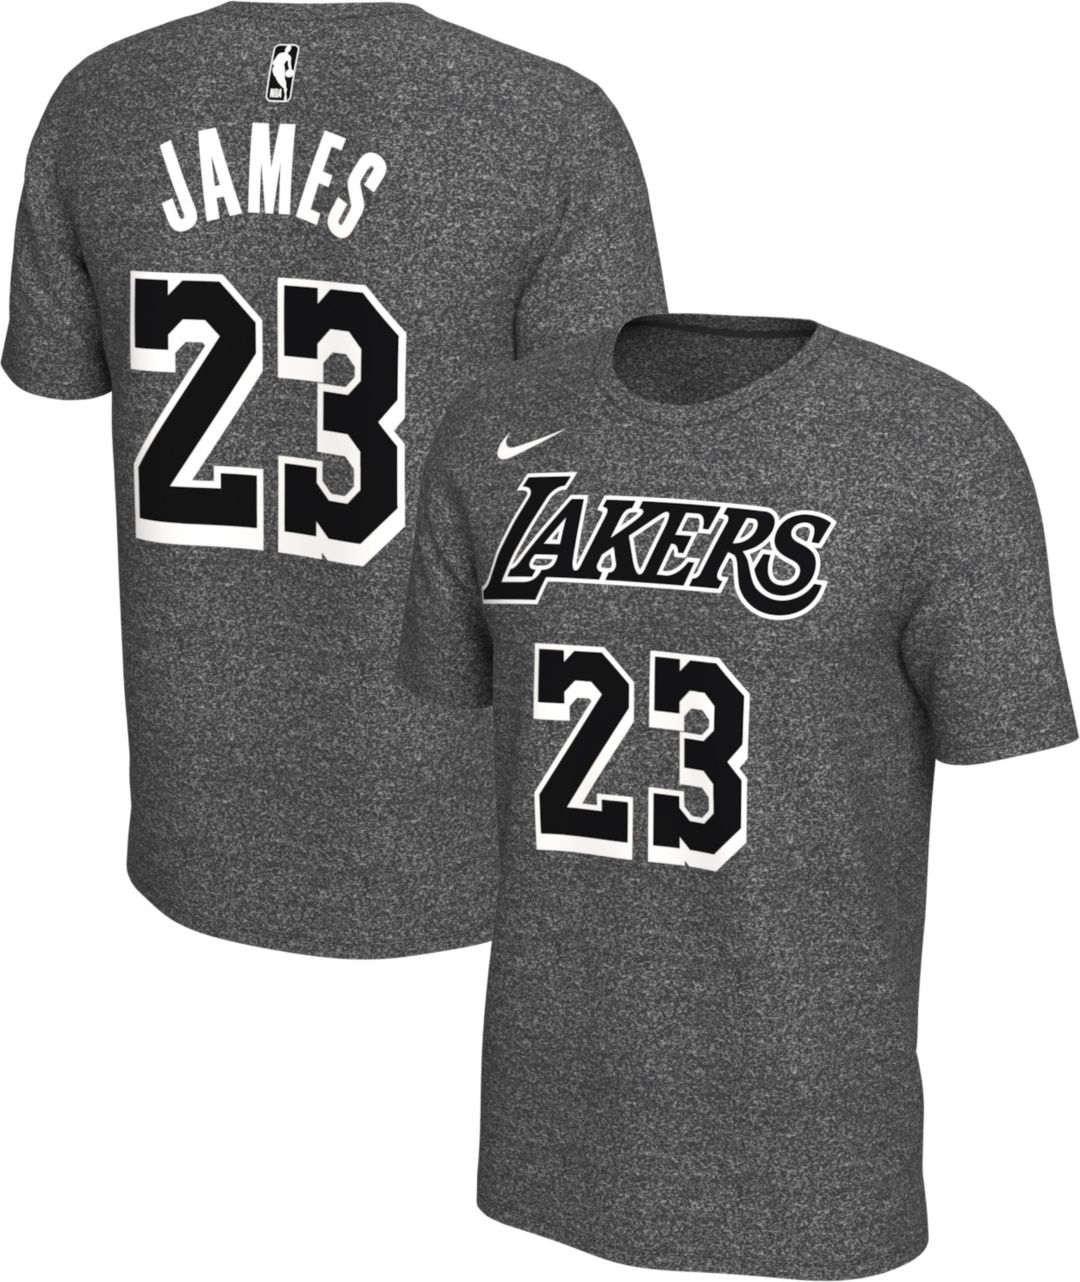 e6745681797d Nike Men's Los Angeles Lakers LeBron James #23 Dri-FIT Grey T-Shirt ...